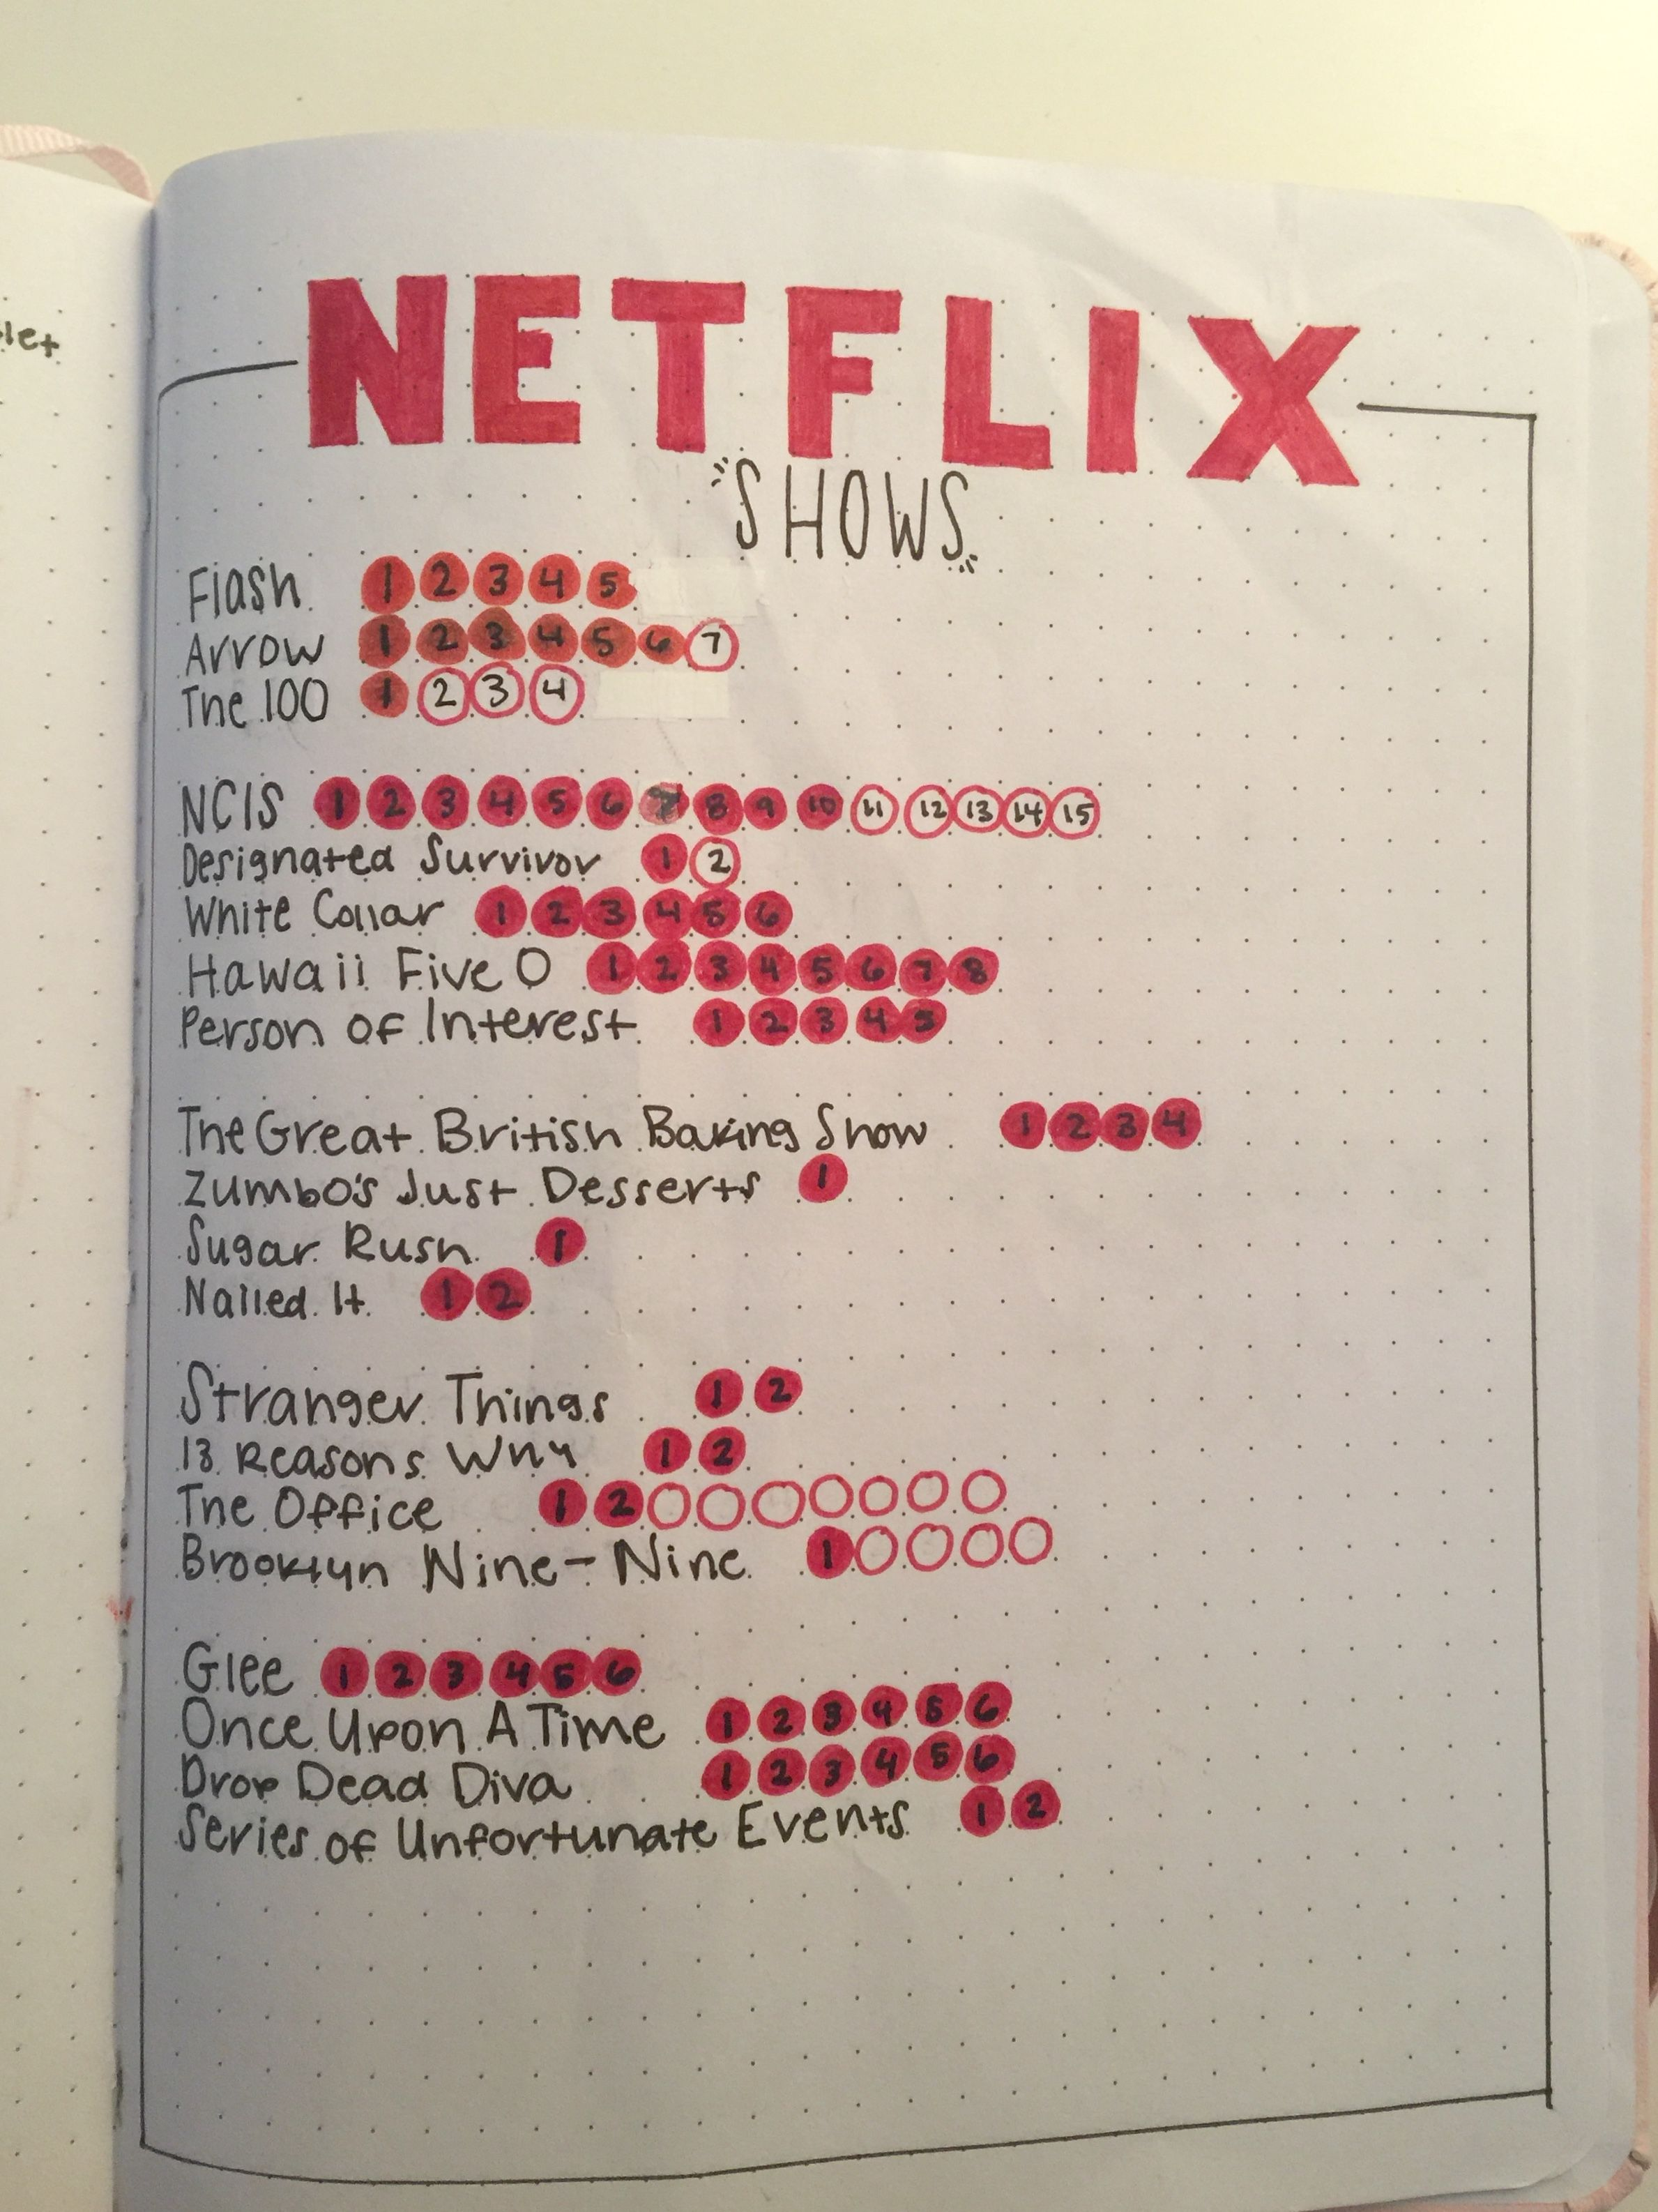 Tv tracker, bullet journal collection #netflixmovies